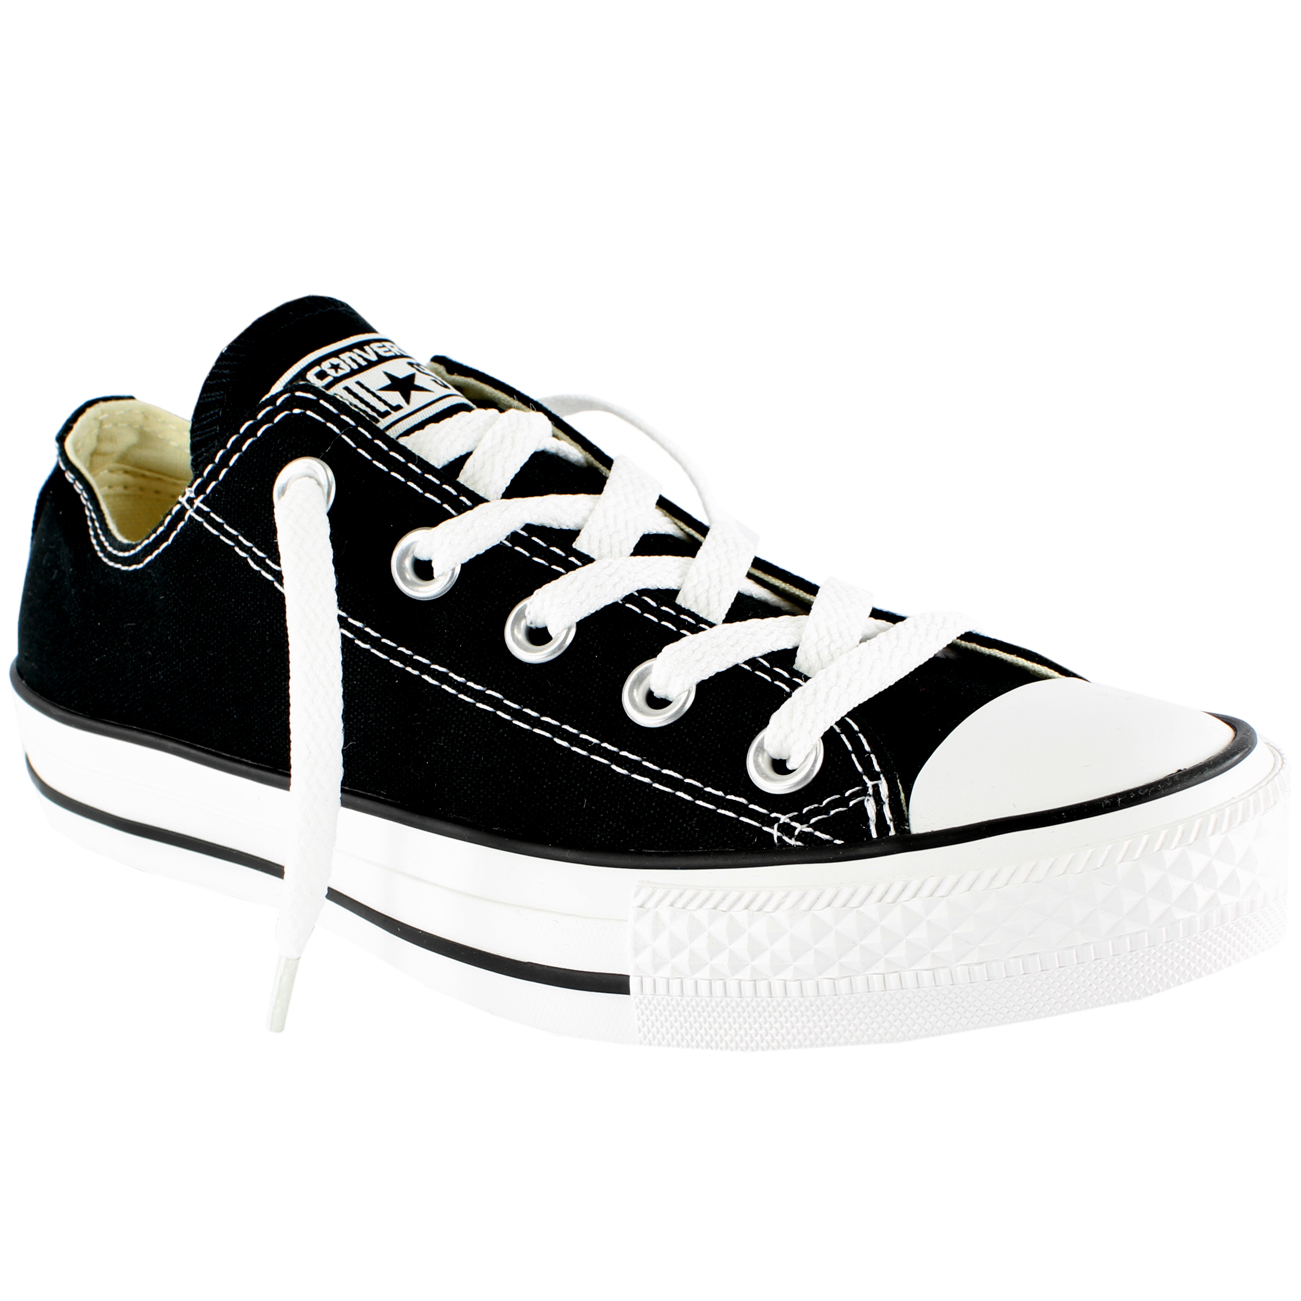 womens converse all star ox low chuck taylor chucks. Black Bedroom Furniture Sets. Home Design Ideas